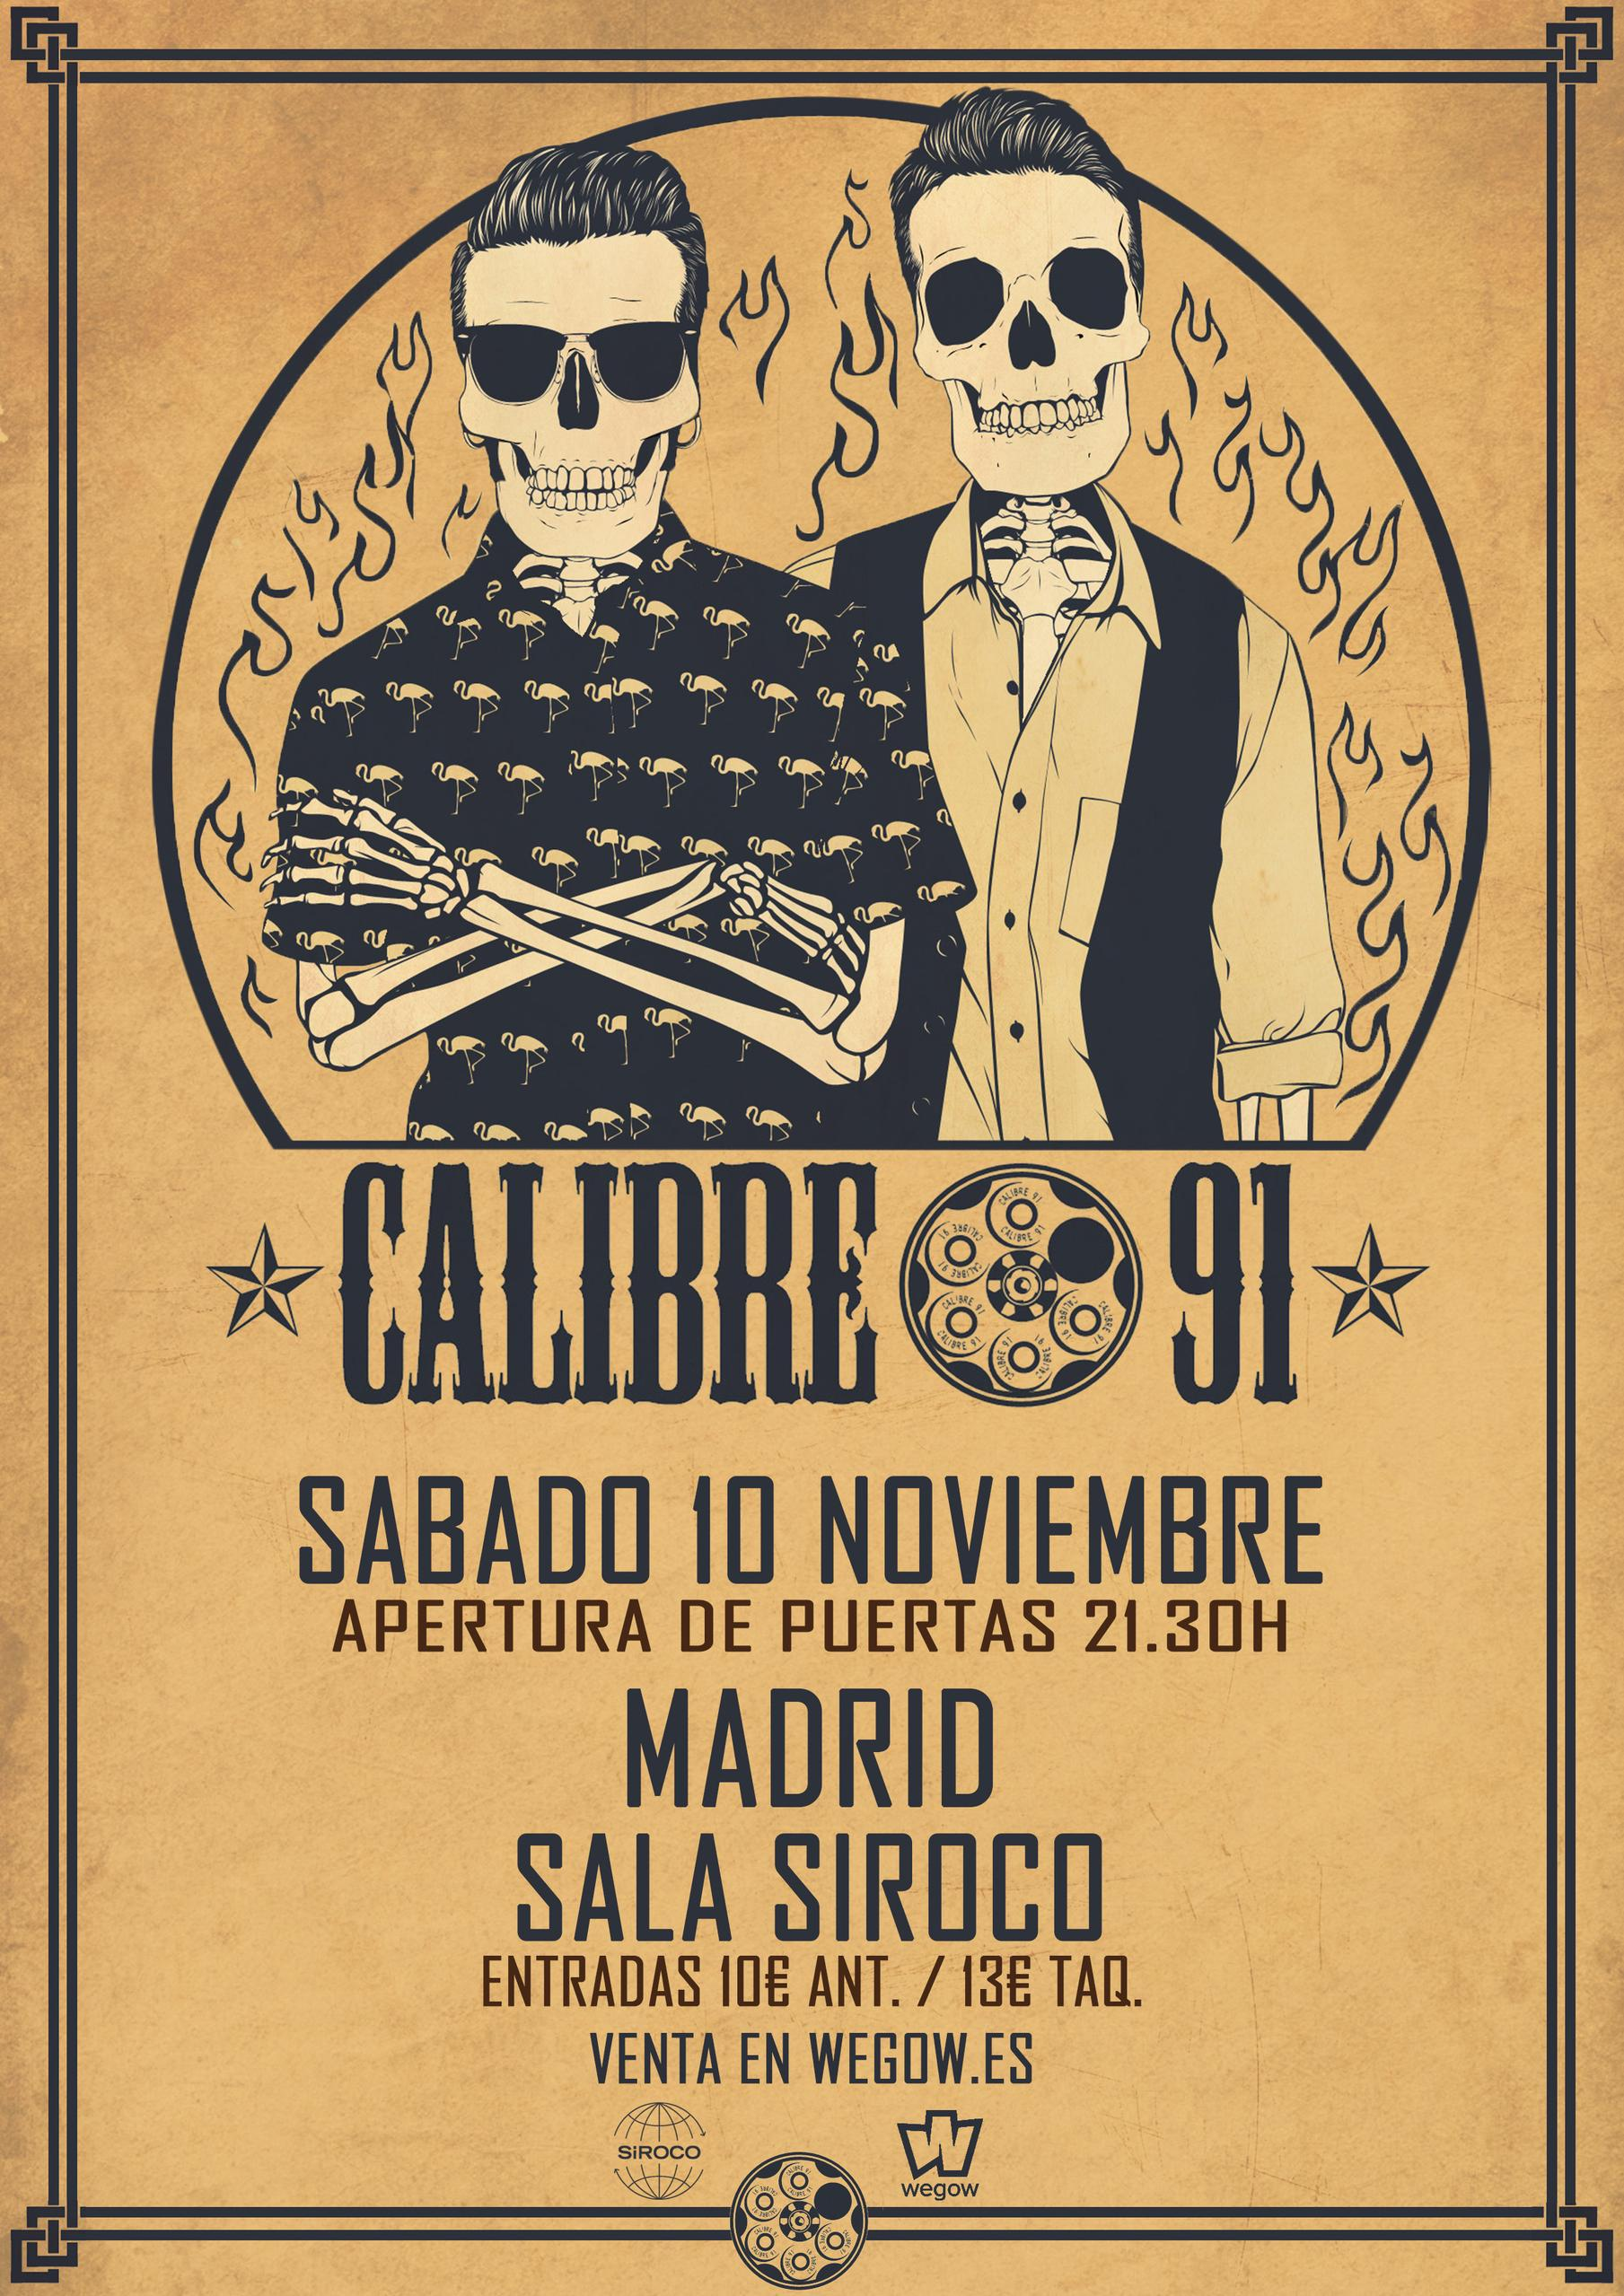 Calibre 91 en Madrid